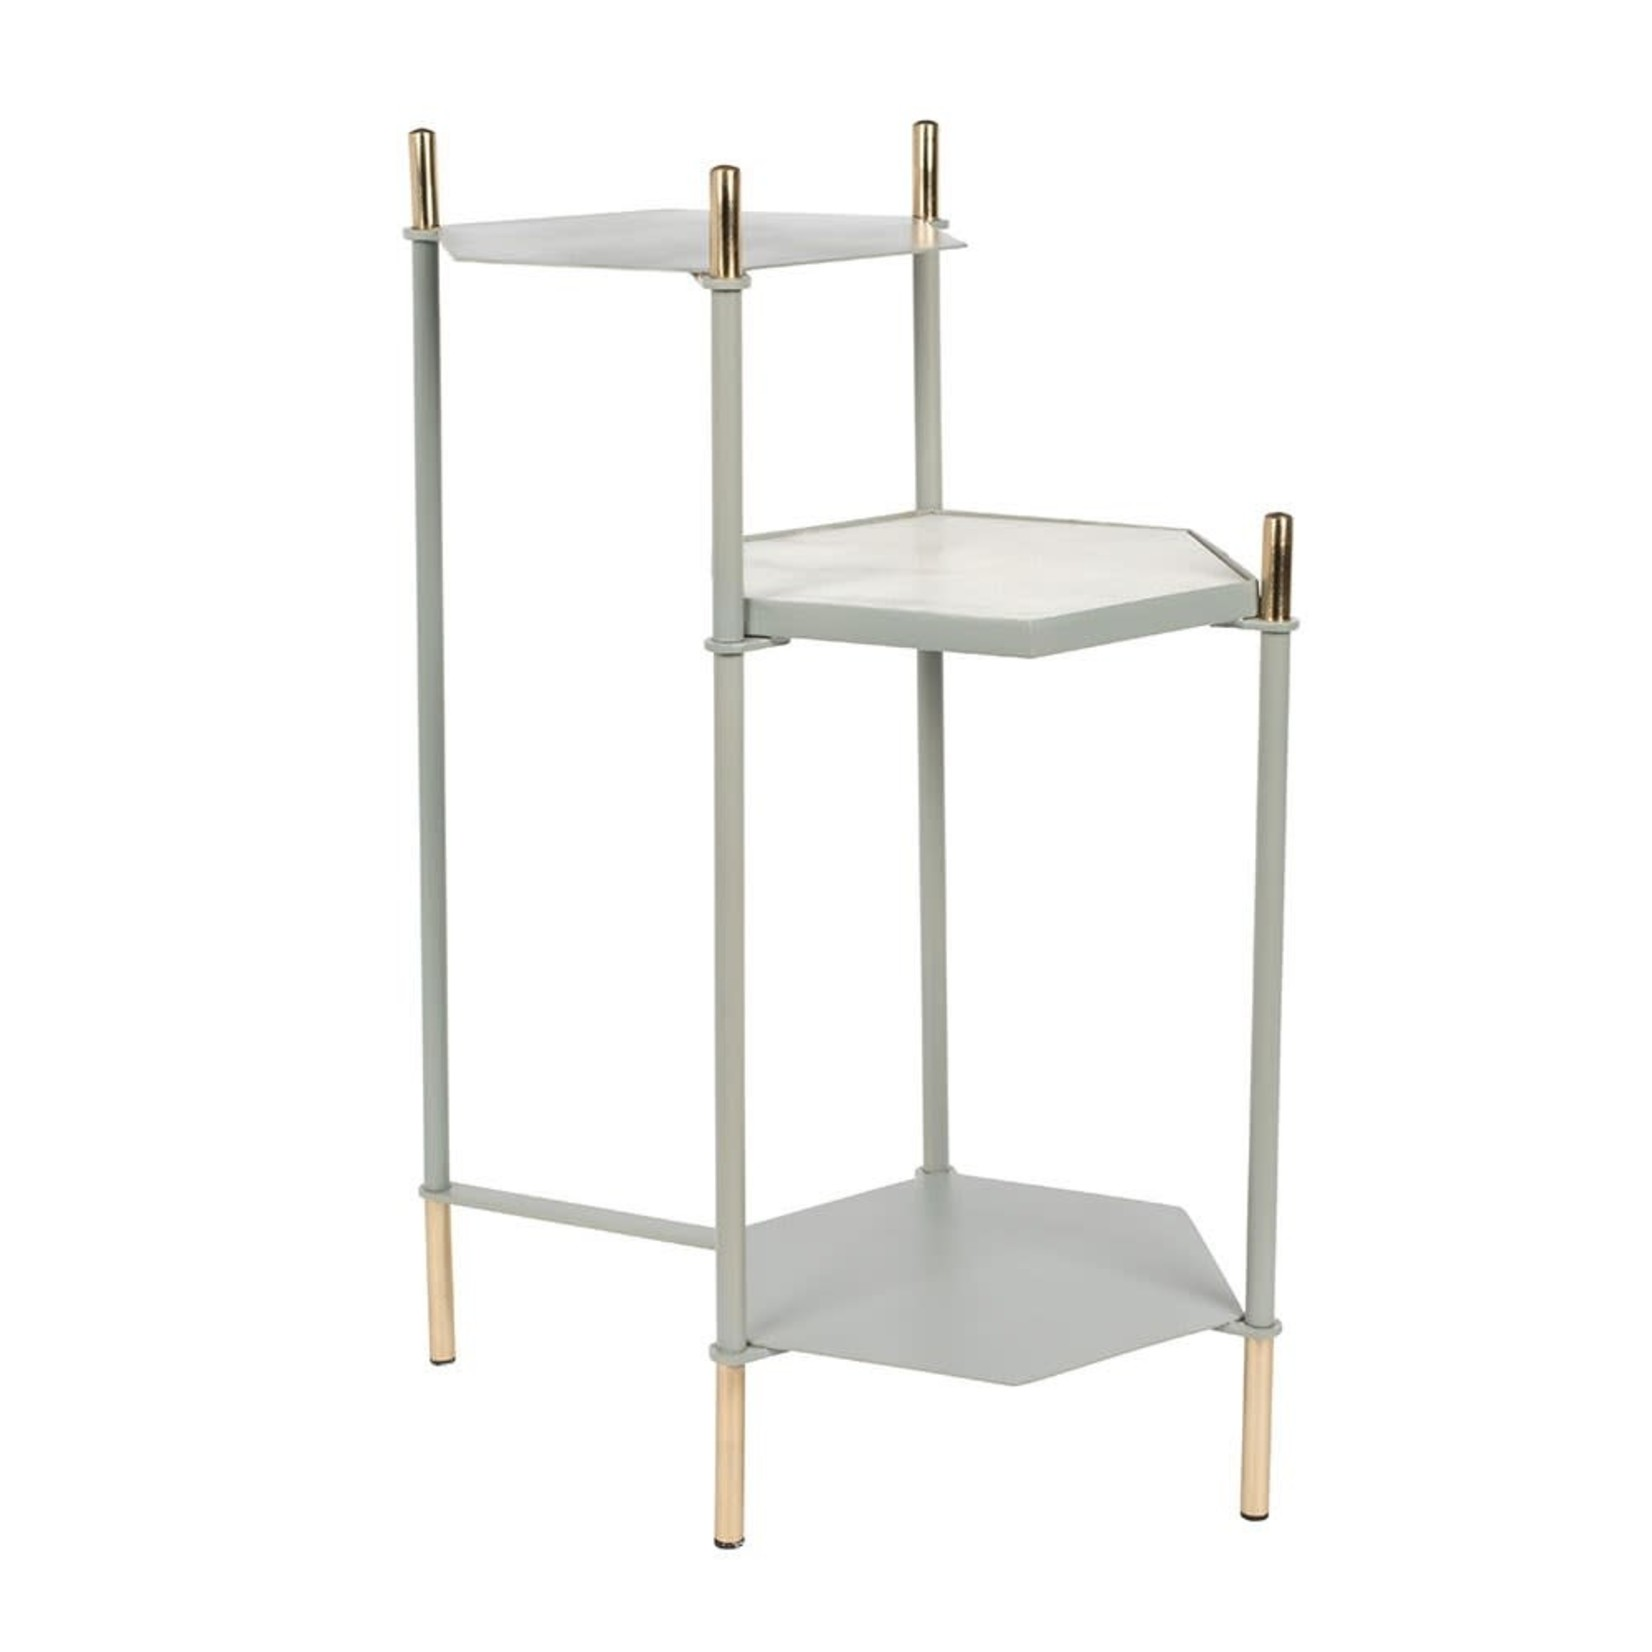 ZUIVER BV Honeycomb Side Table